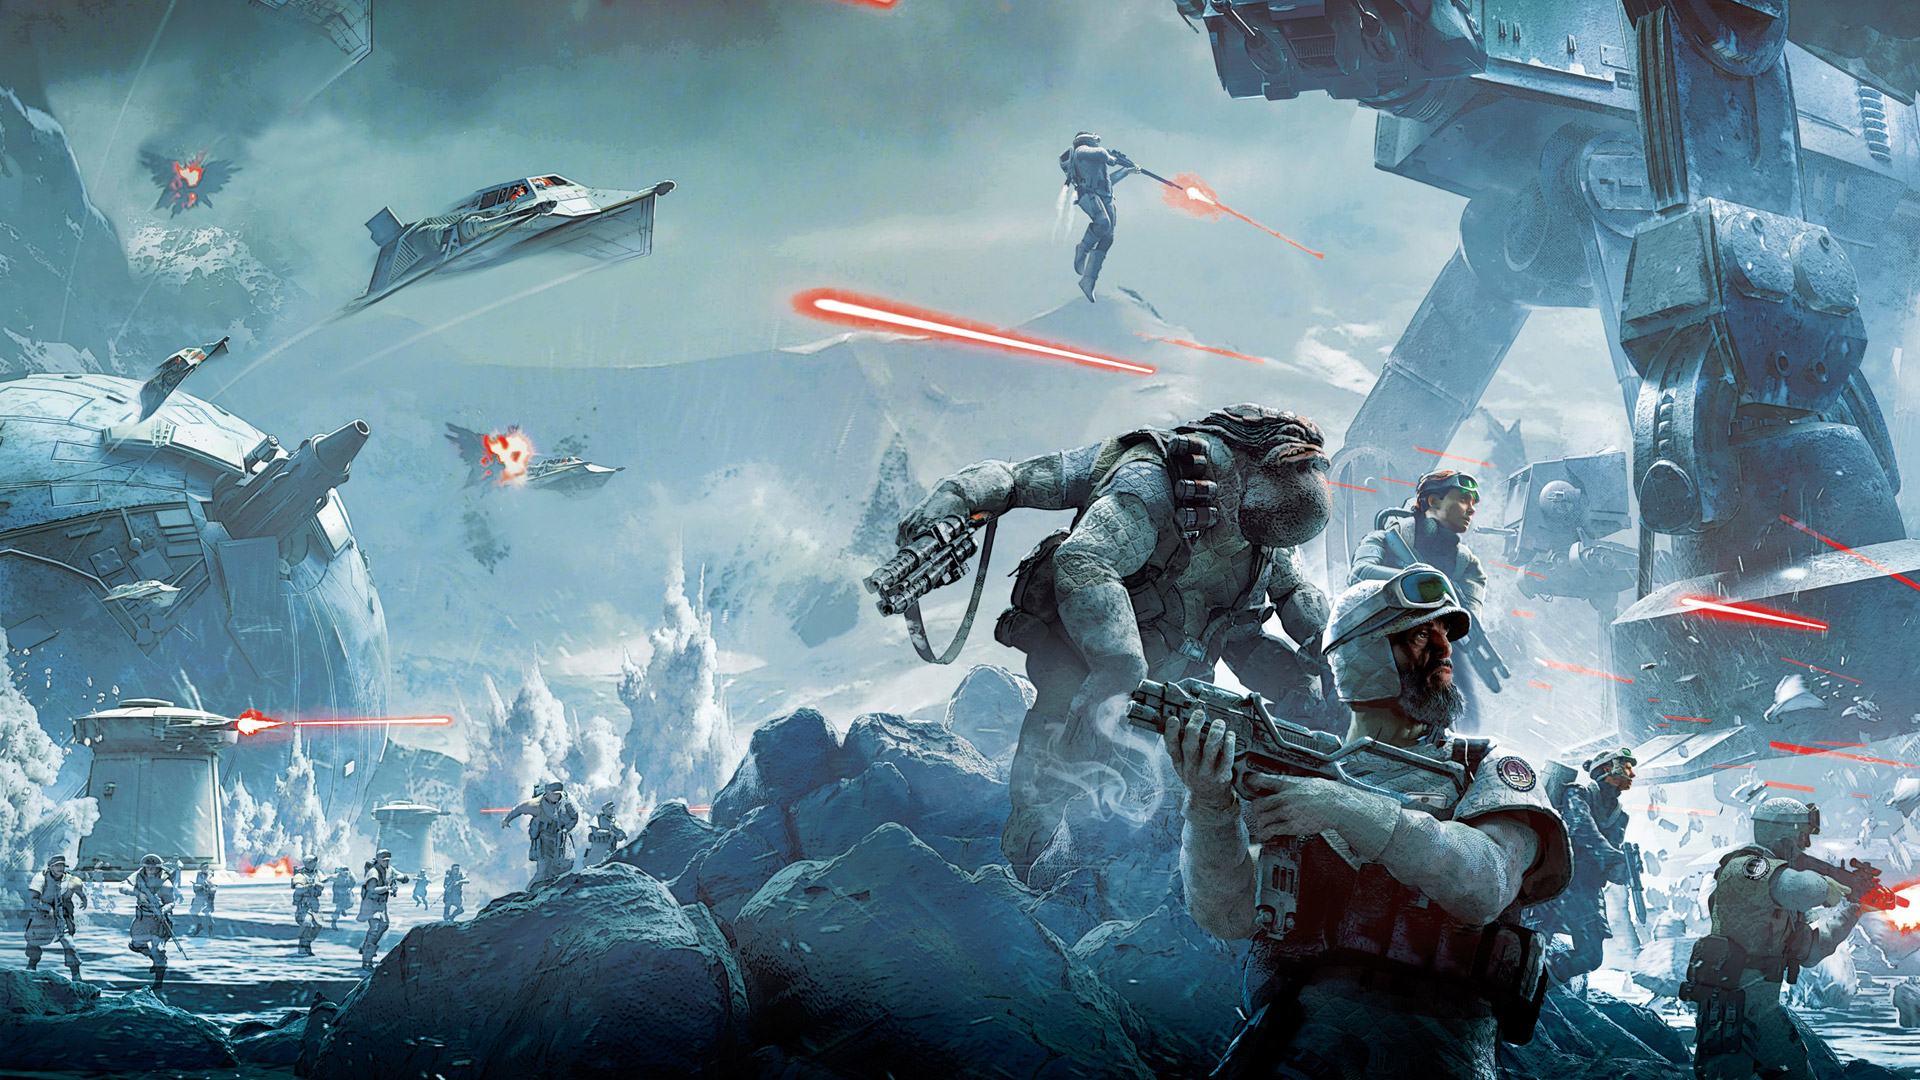 Free Star Wars Battlefront Wallpaper In 1920x1080